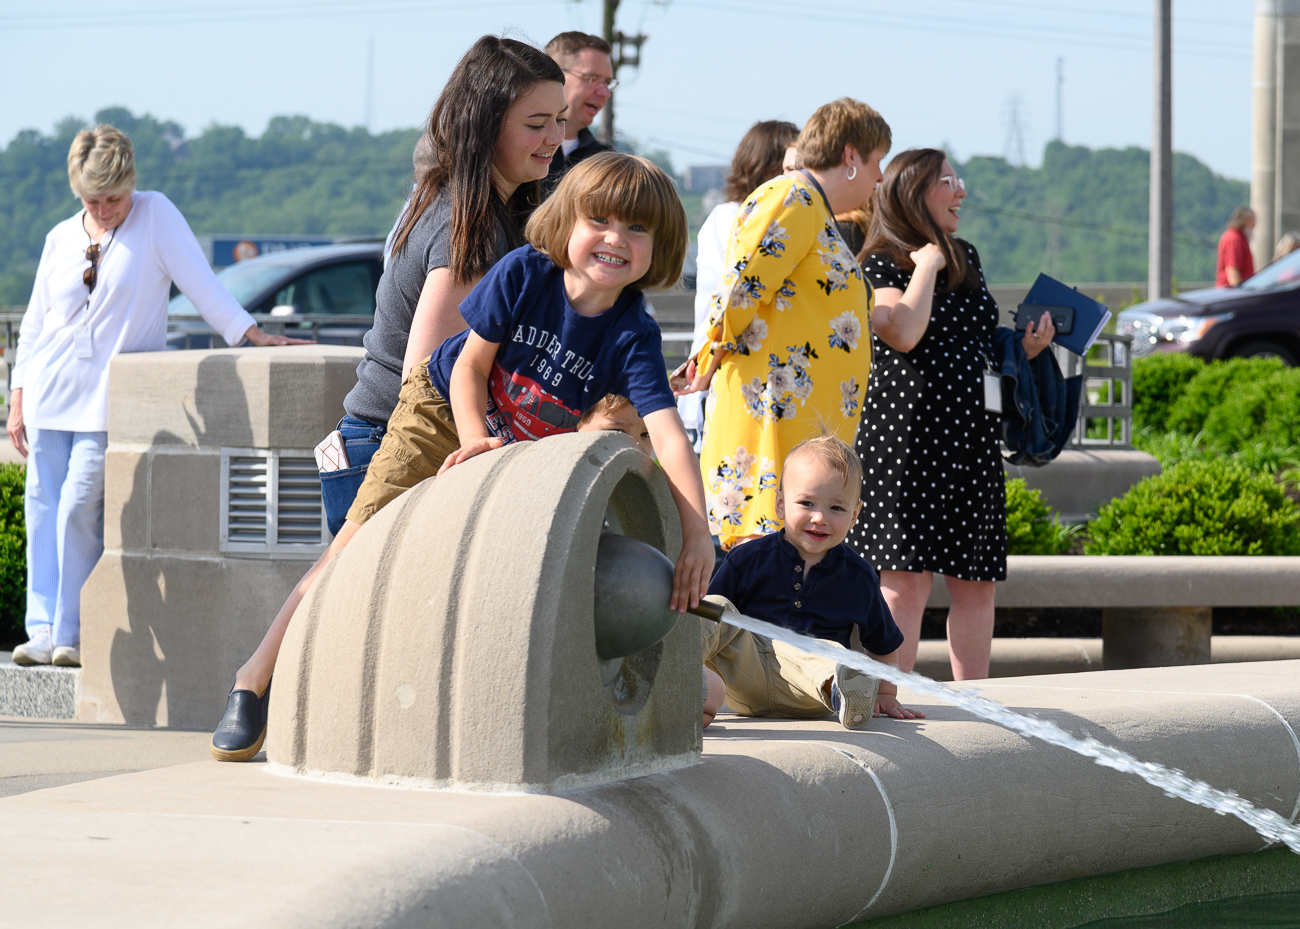 People of all ages rejoice as Union Terminal's fountain turned on for the first time since renovations completed. / Image: Phil Armstrong<p></p>